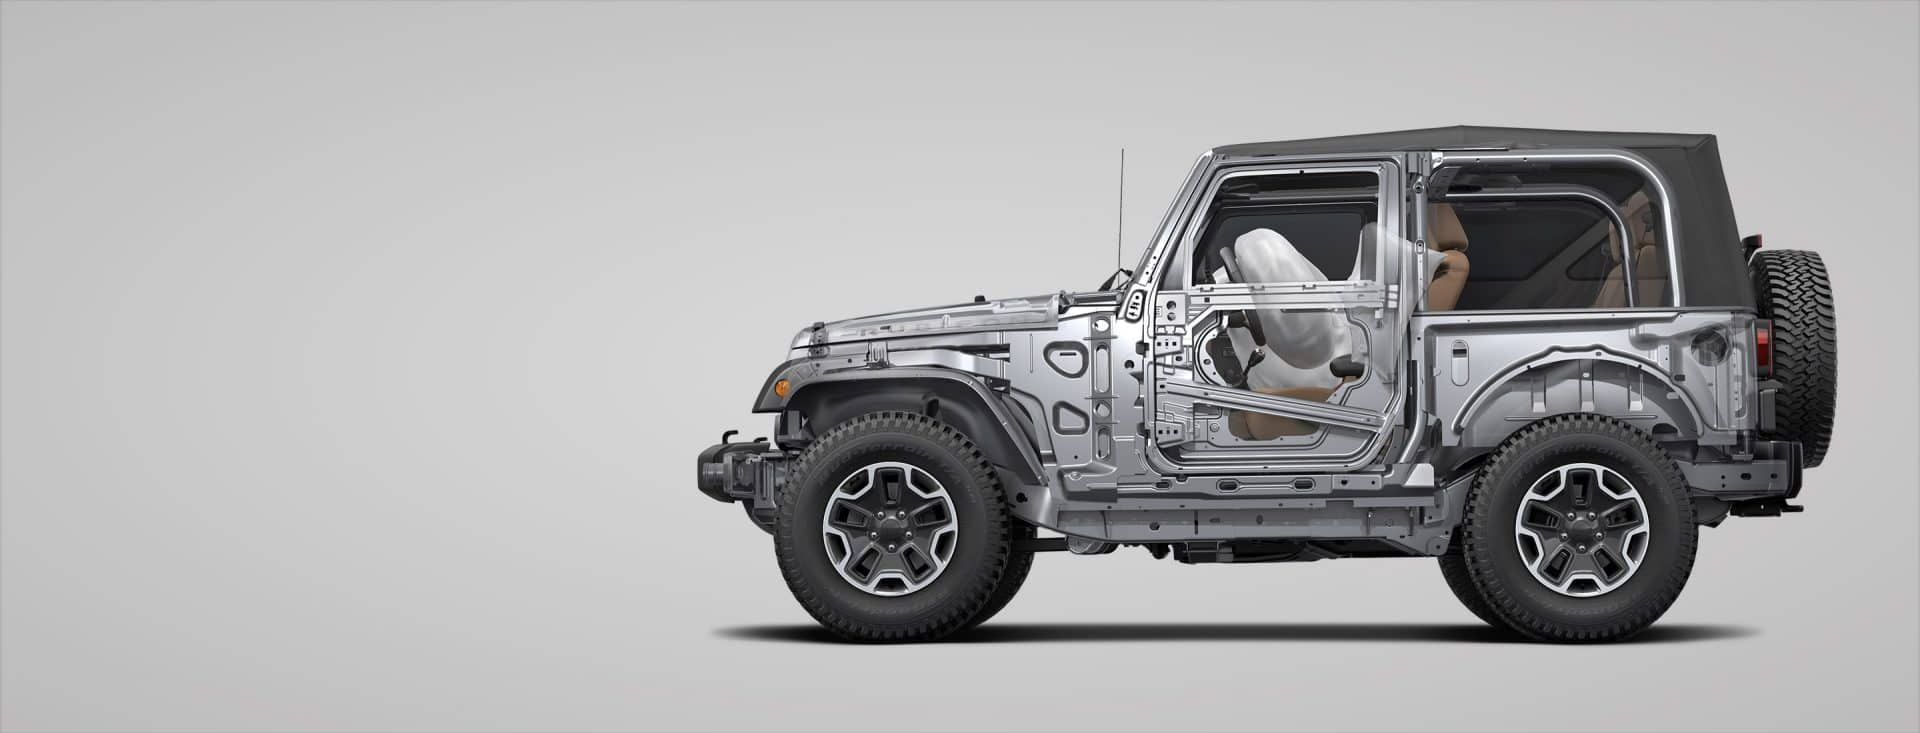 2018 Jeep Wrangler JK Safety Features